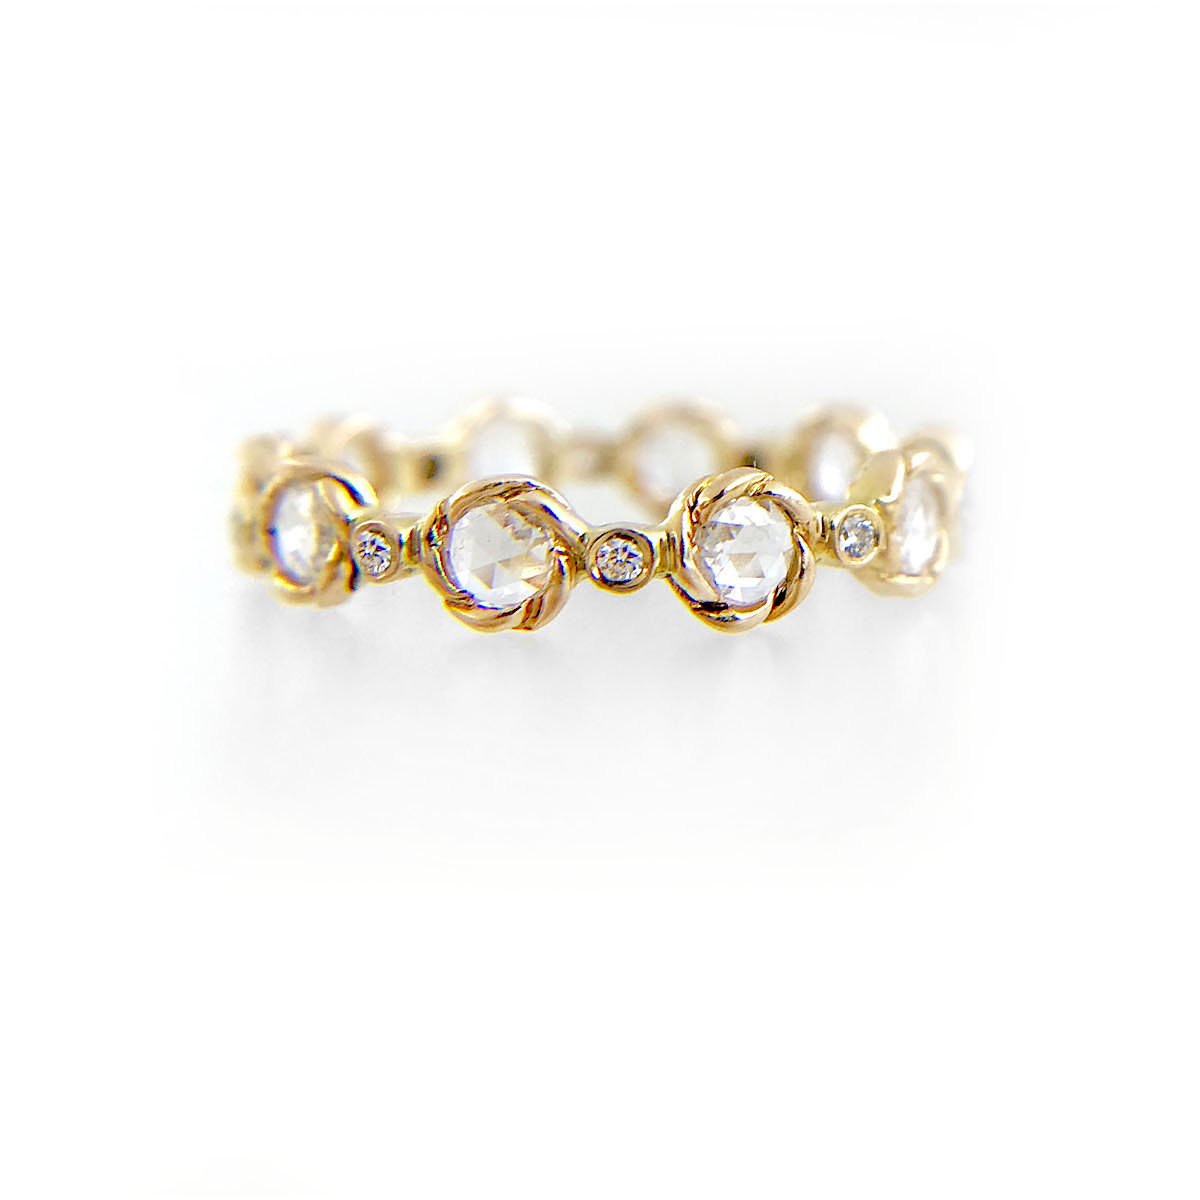 21-Signature-Twist-Bezel-4mm-Rose-Cut-Diamond-Eternity-Gold-Ring-14k-18k-JeweLyrie_3382